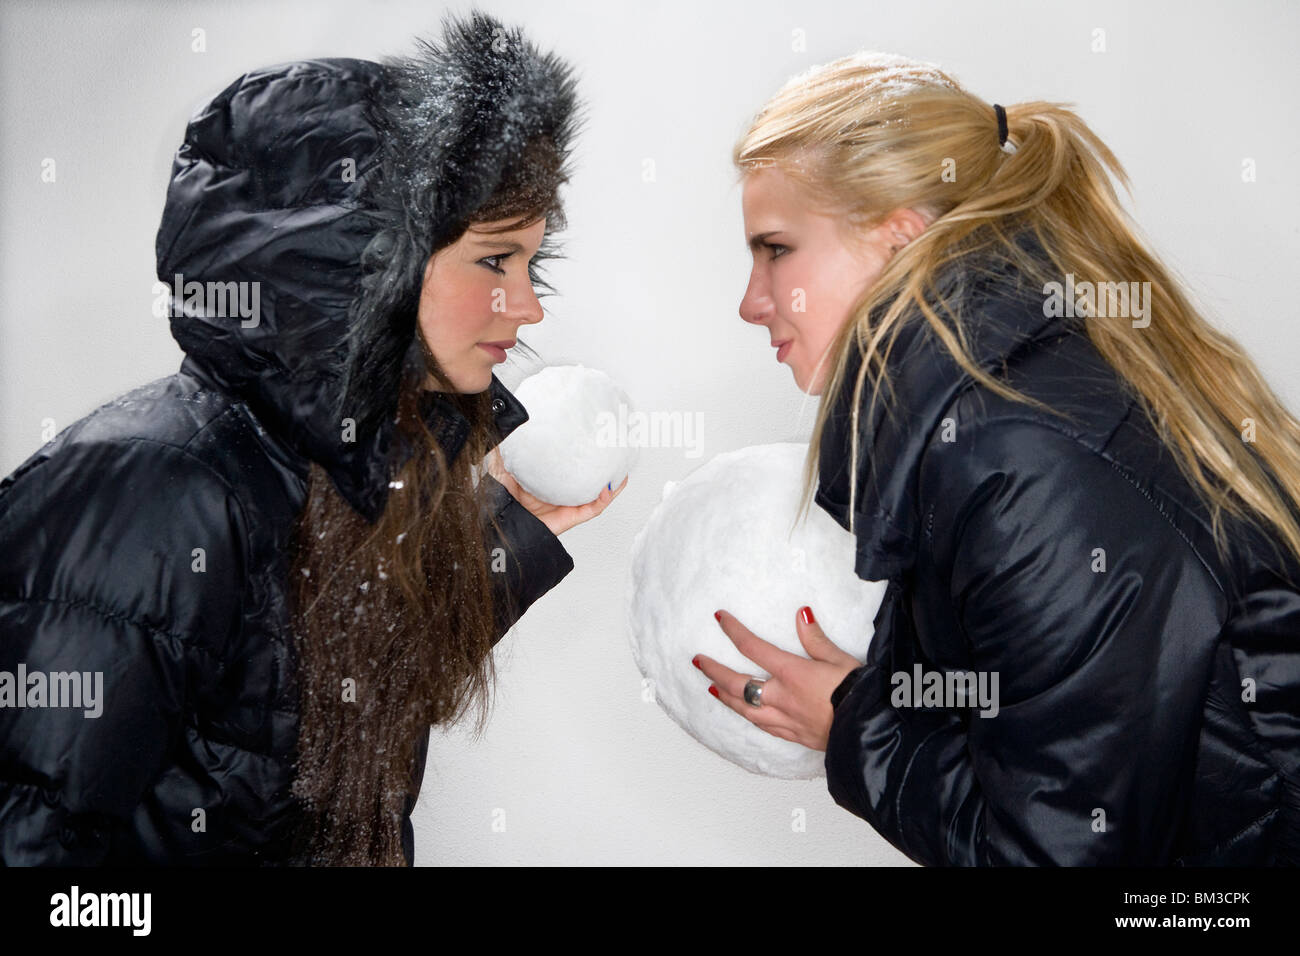 Girls compete with snowballs - Stock Image